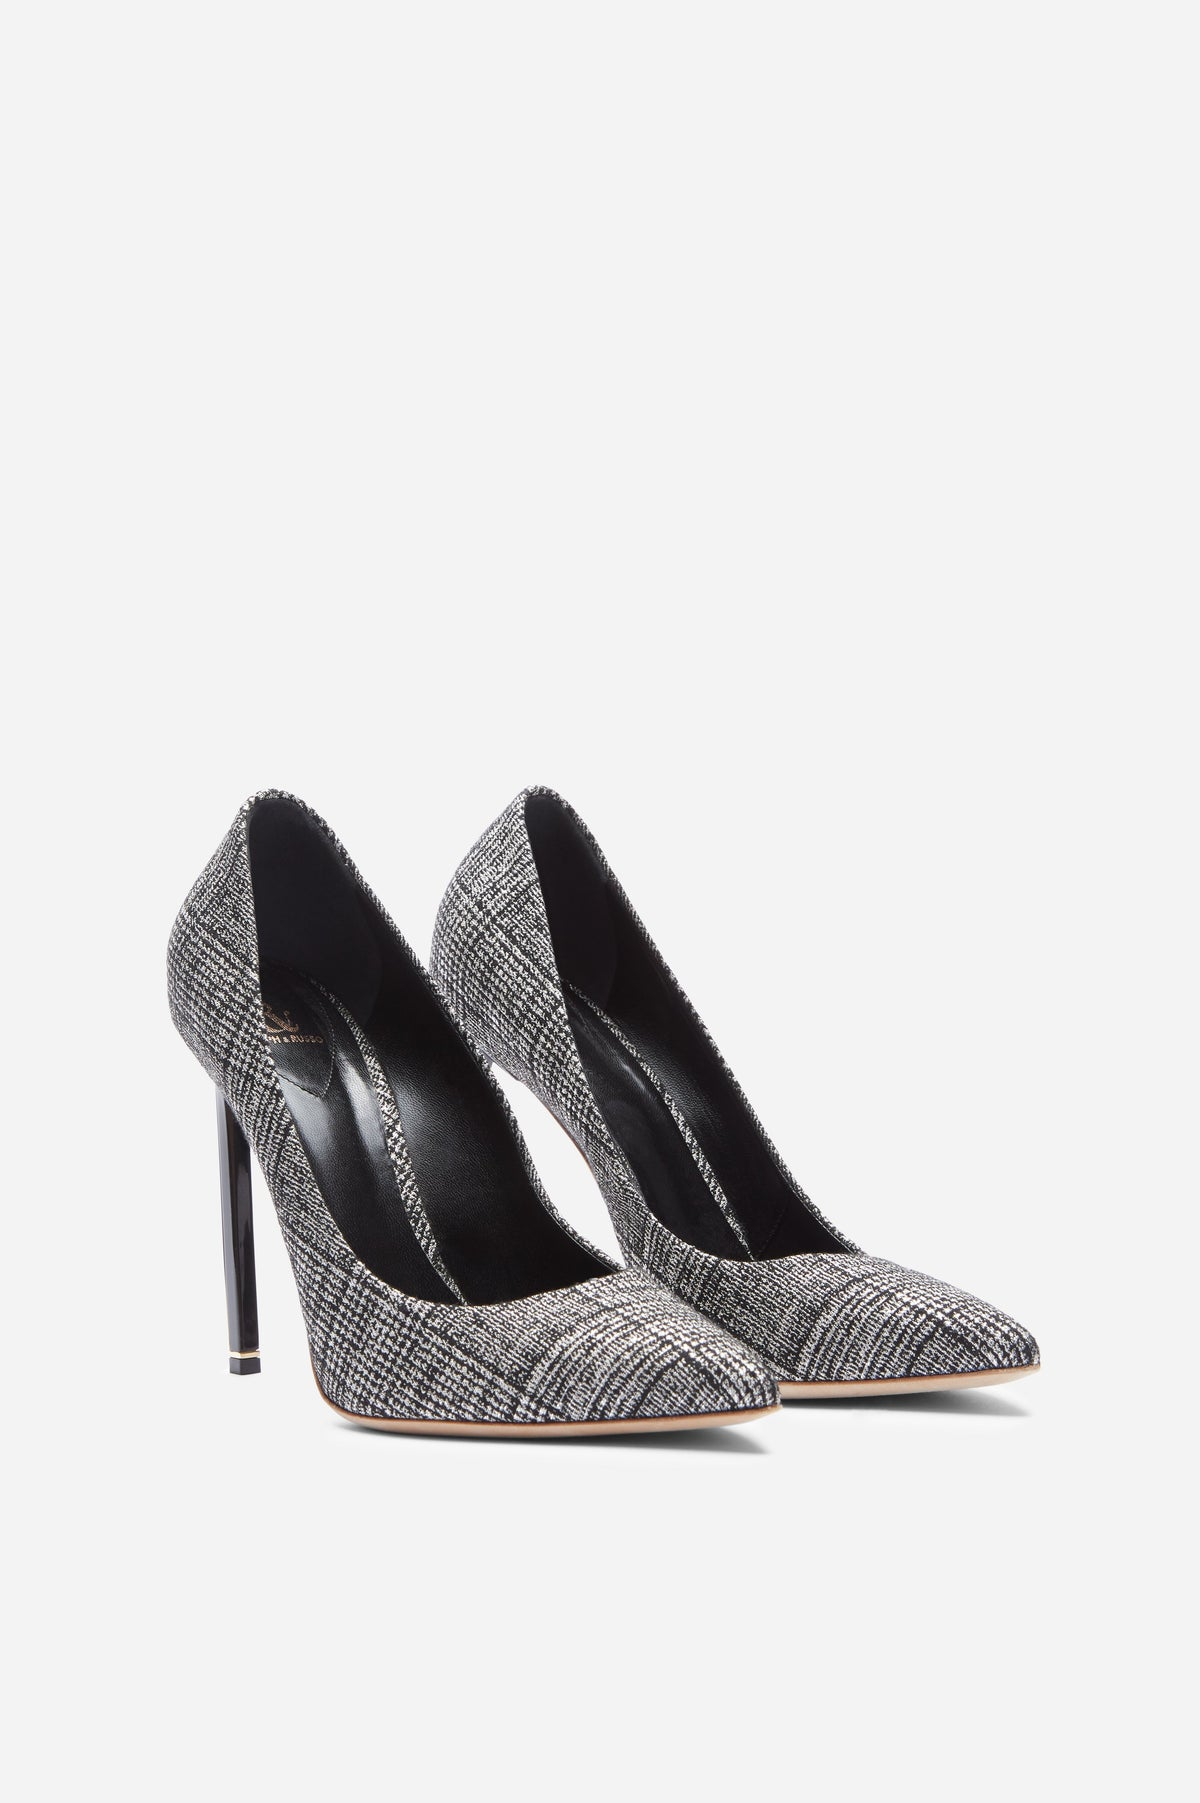 Black and White Houndstooth Empire Pumps with Light Gold Hardware